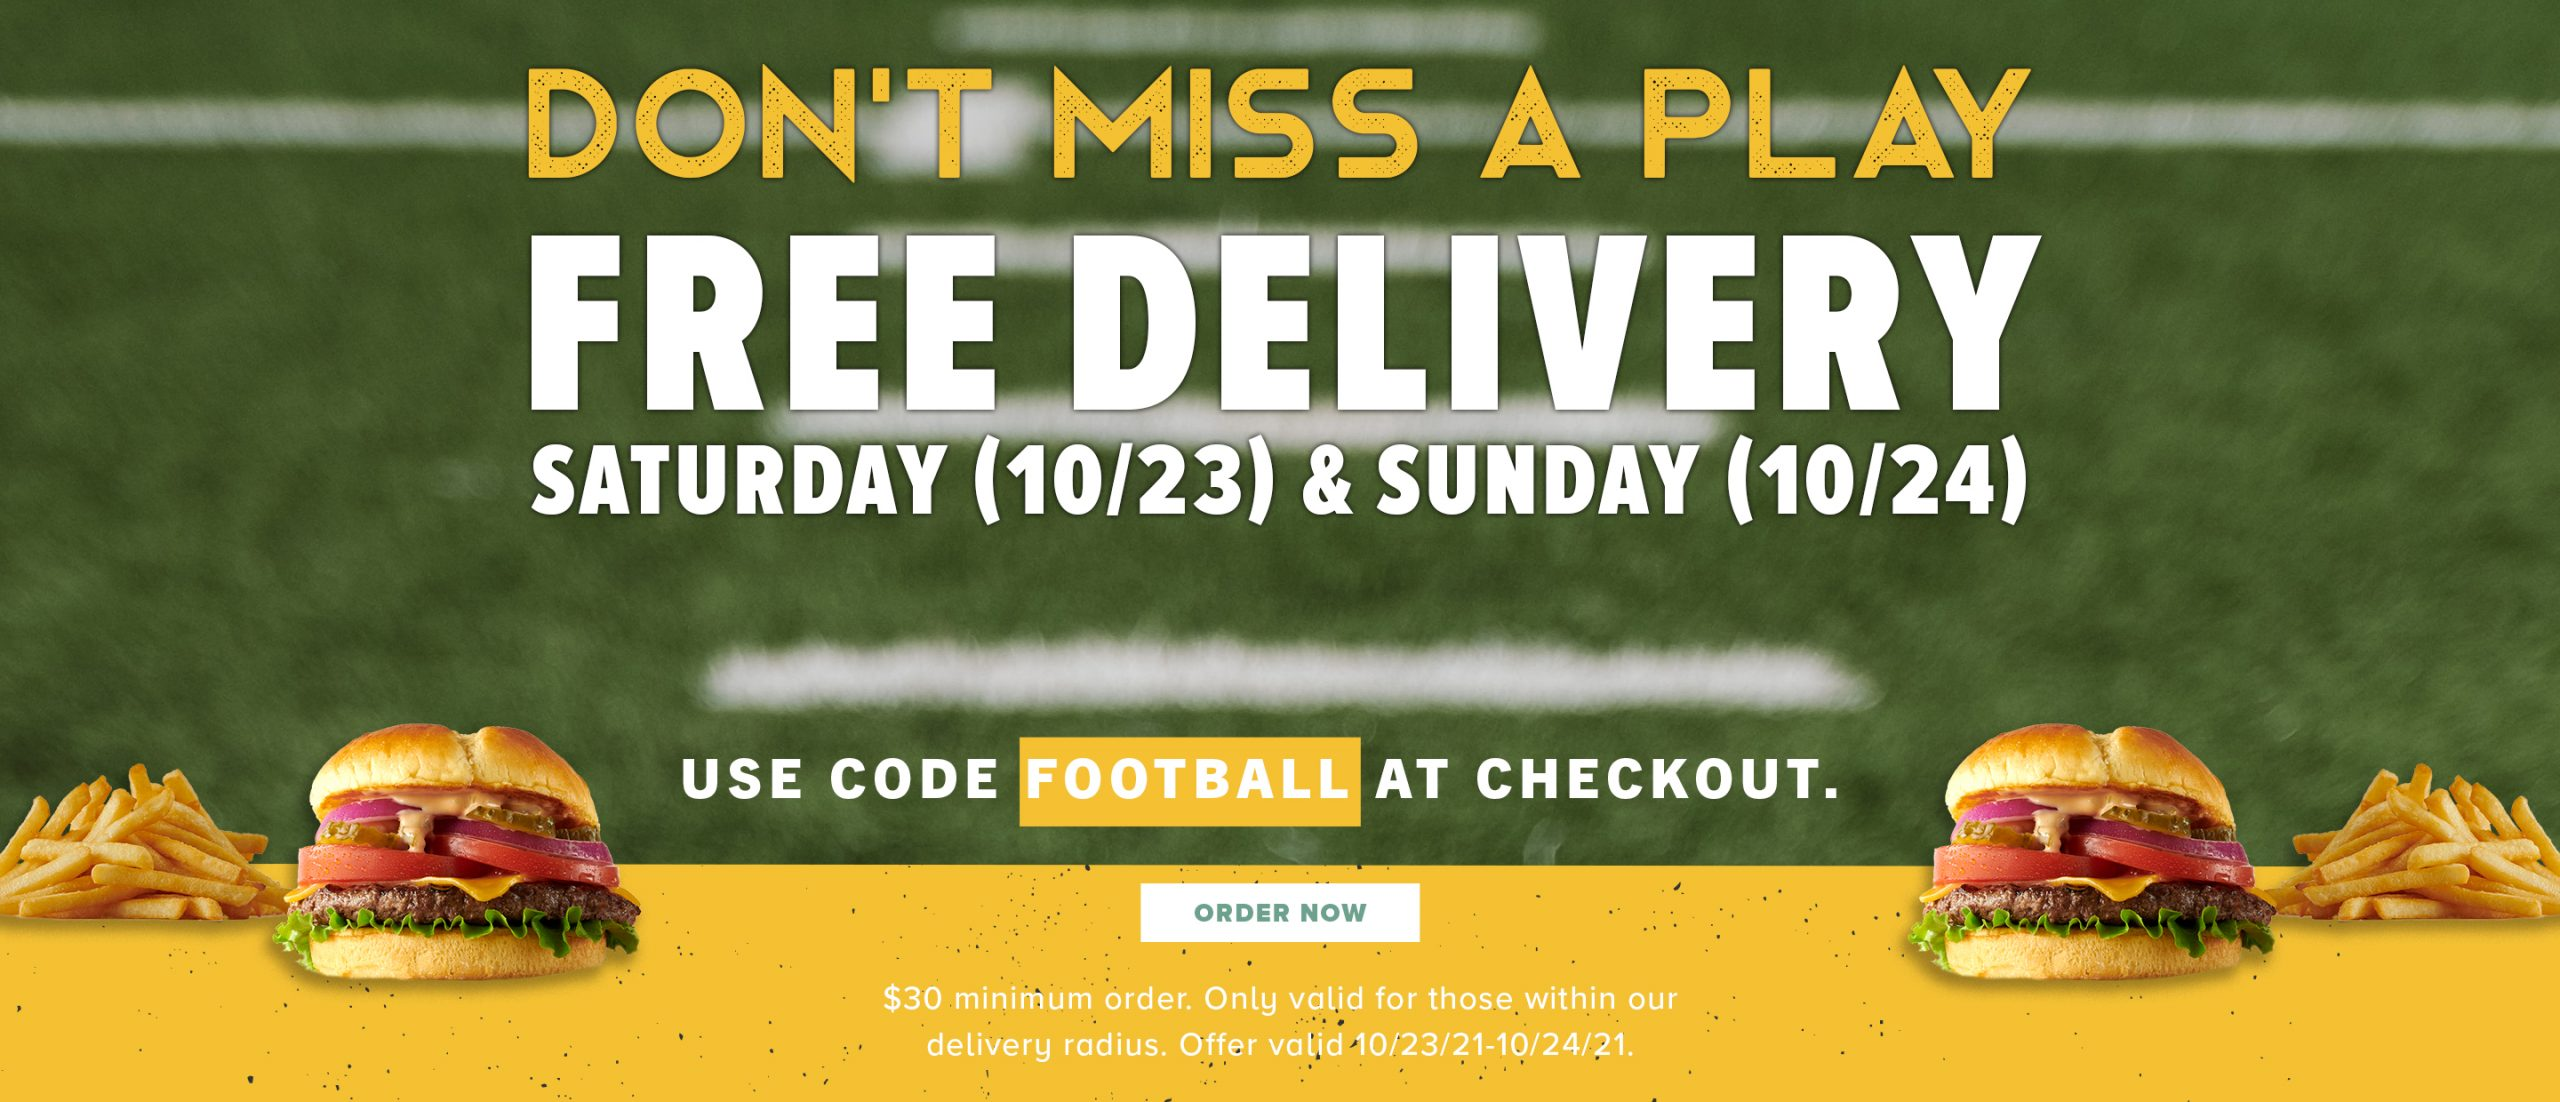 Don't miss a play. Free delivery Saturday 10/23 and Sunday 10/24. Use code FOOTBALL at checkout. $30 minimum purchase required.